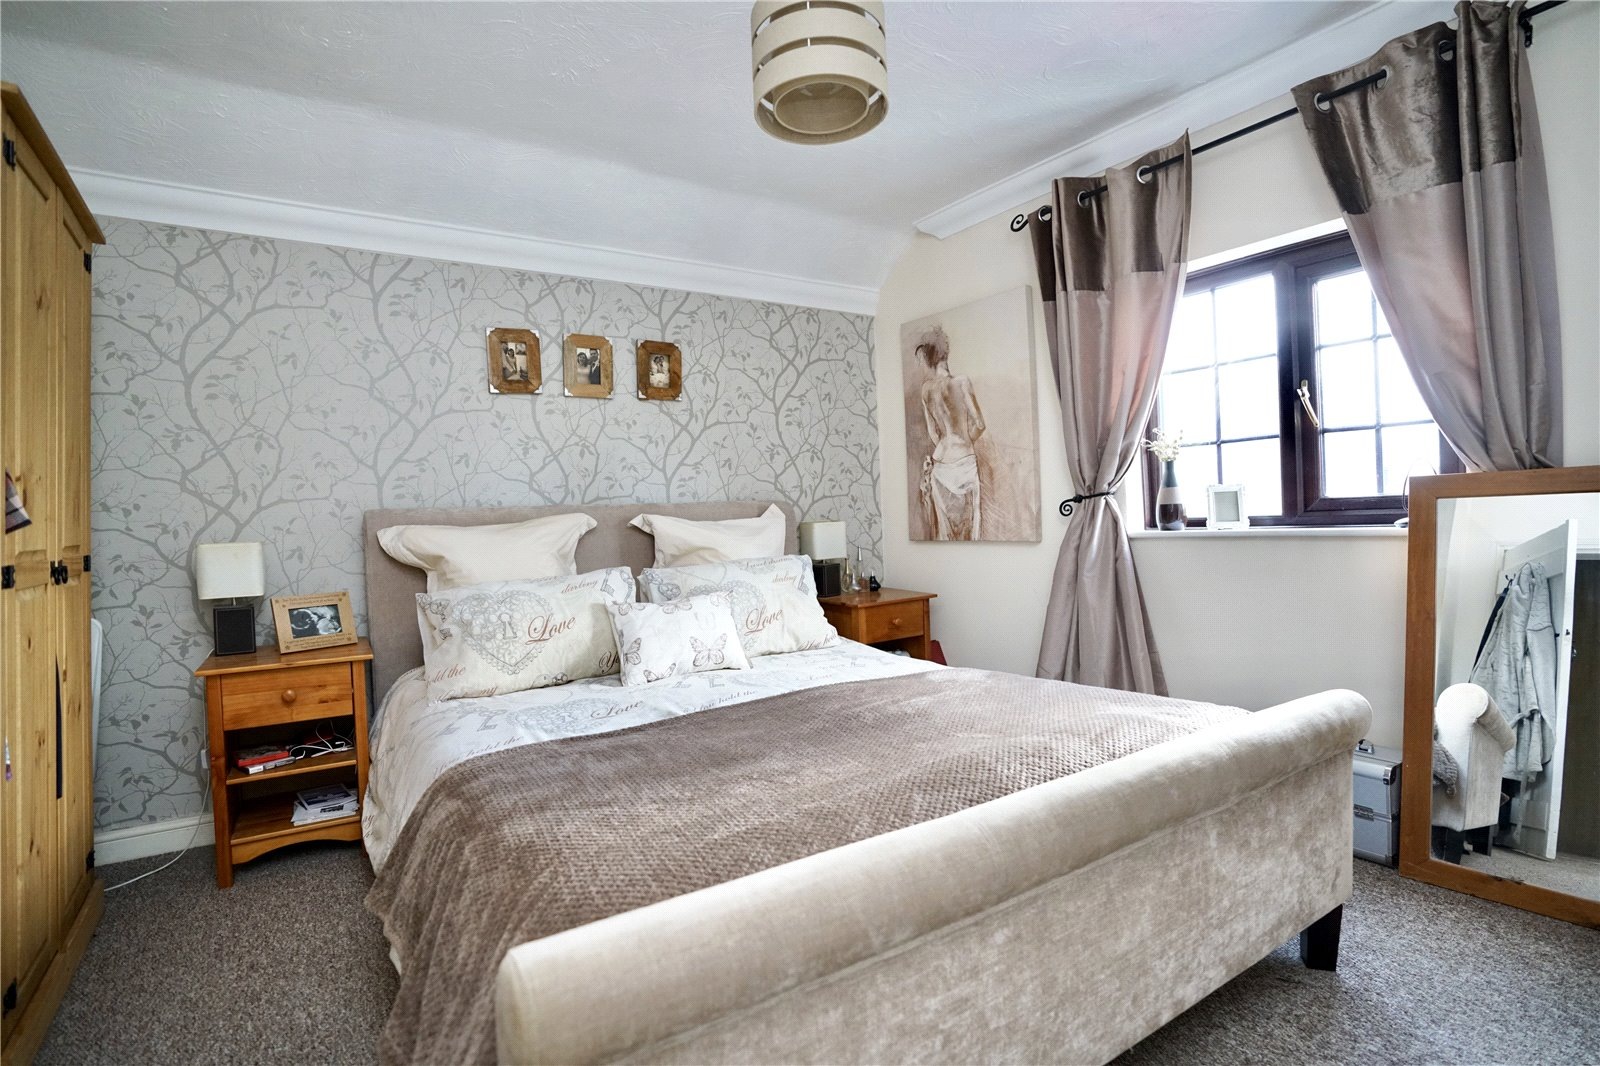 2 bed house for sale in Offord D'arcy 7